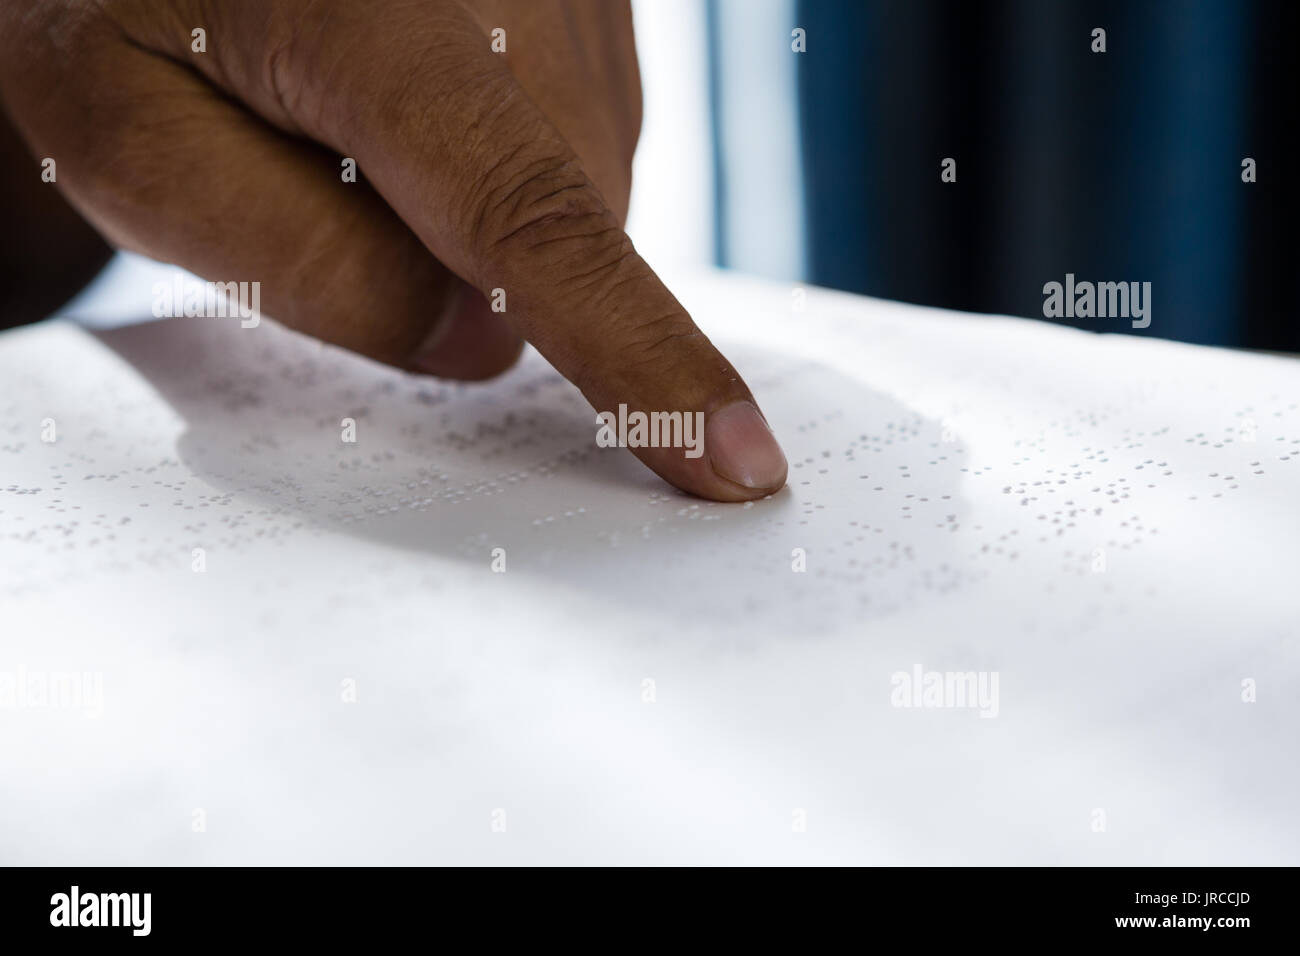 La main coupée sur senior man reading livre en braille en maison de retraite f960b1125e1